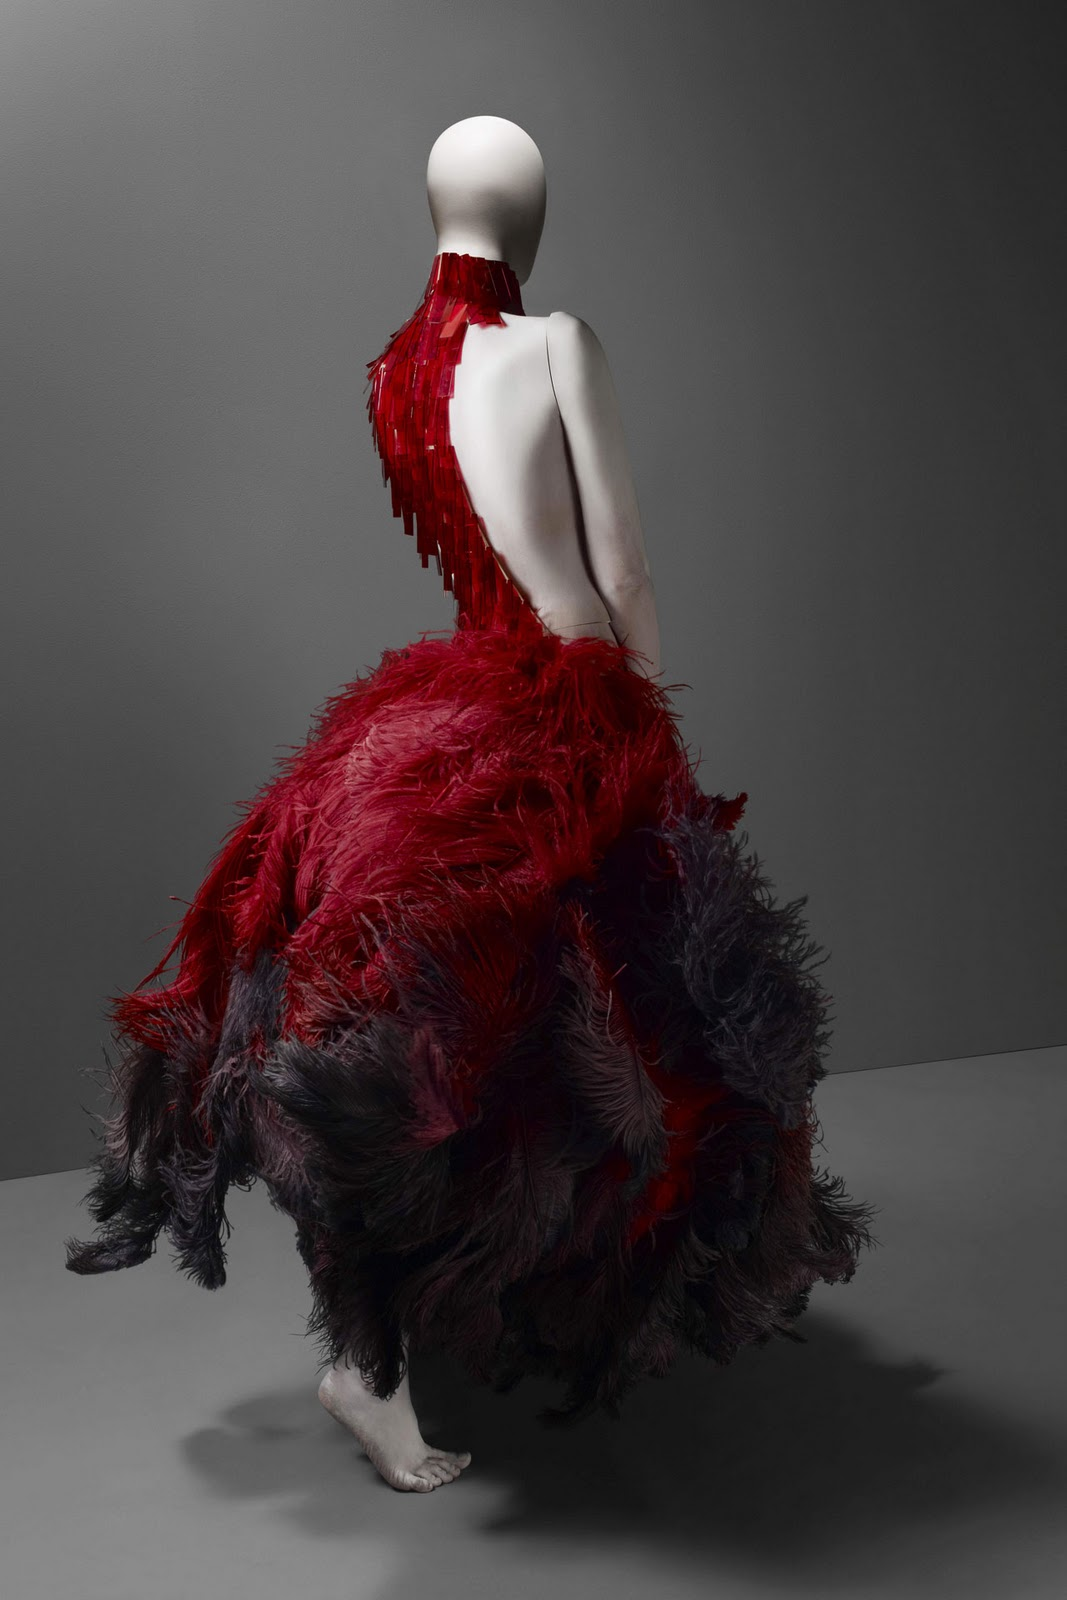 Alexander Mcqueen Resort 2019 Fashion Show: Bizarre: ALEXANDER McQUEEN: SAVAGE BEAUTY